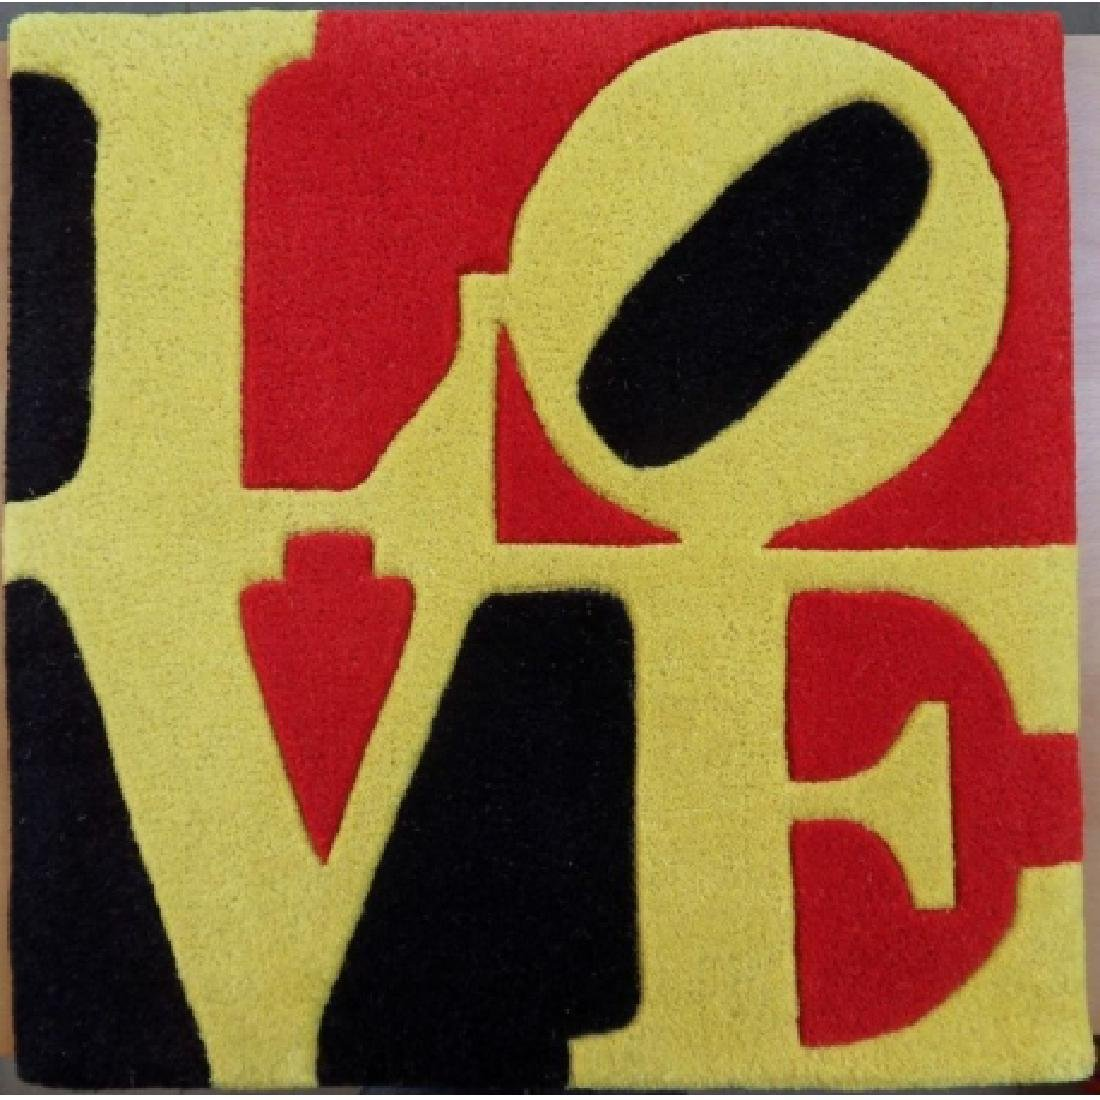 Robert INDIANA Liebe LOVE